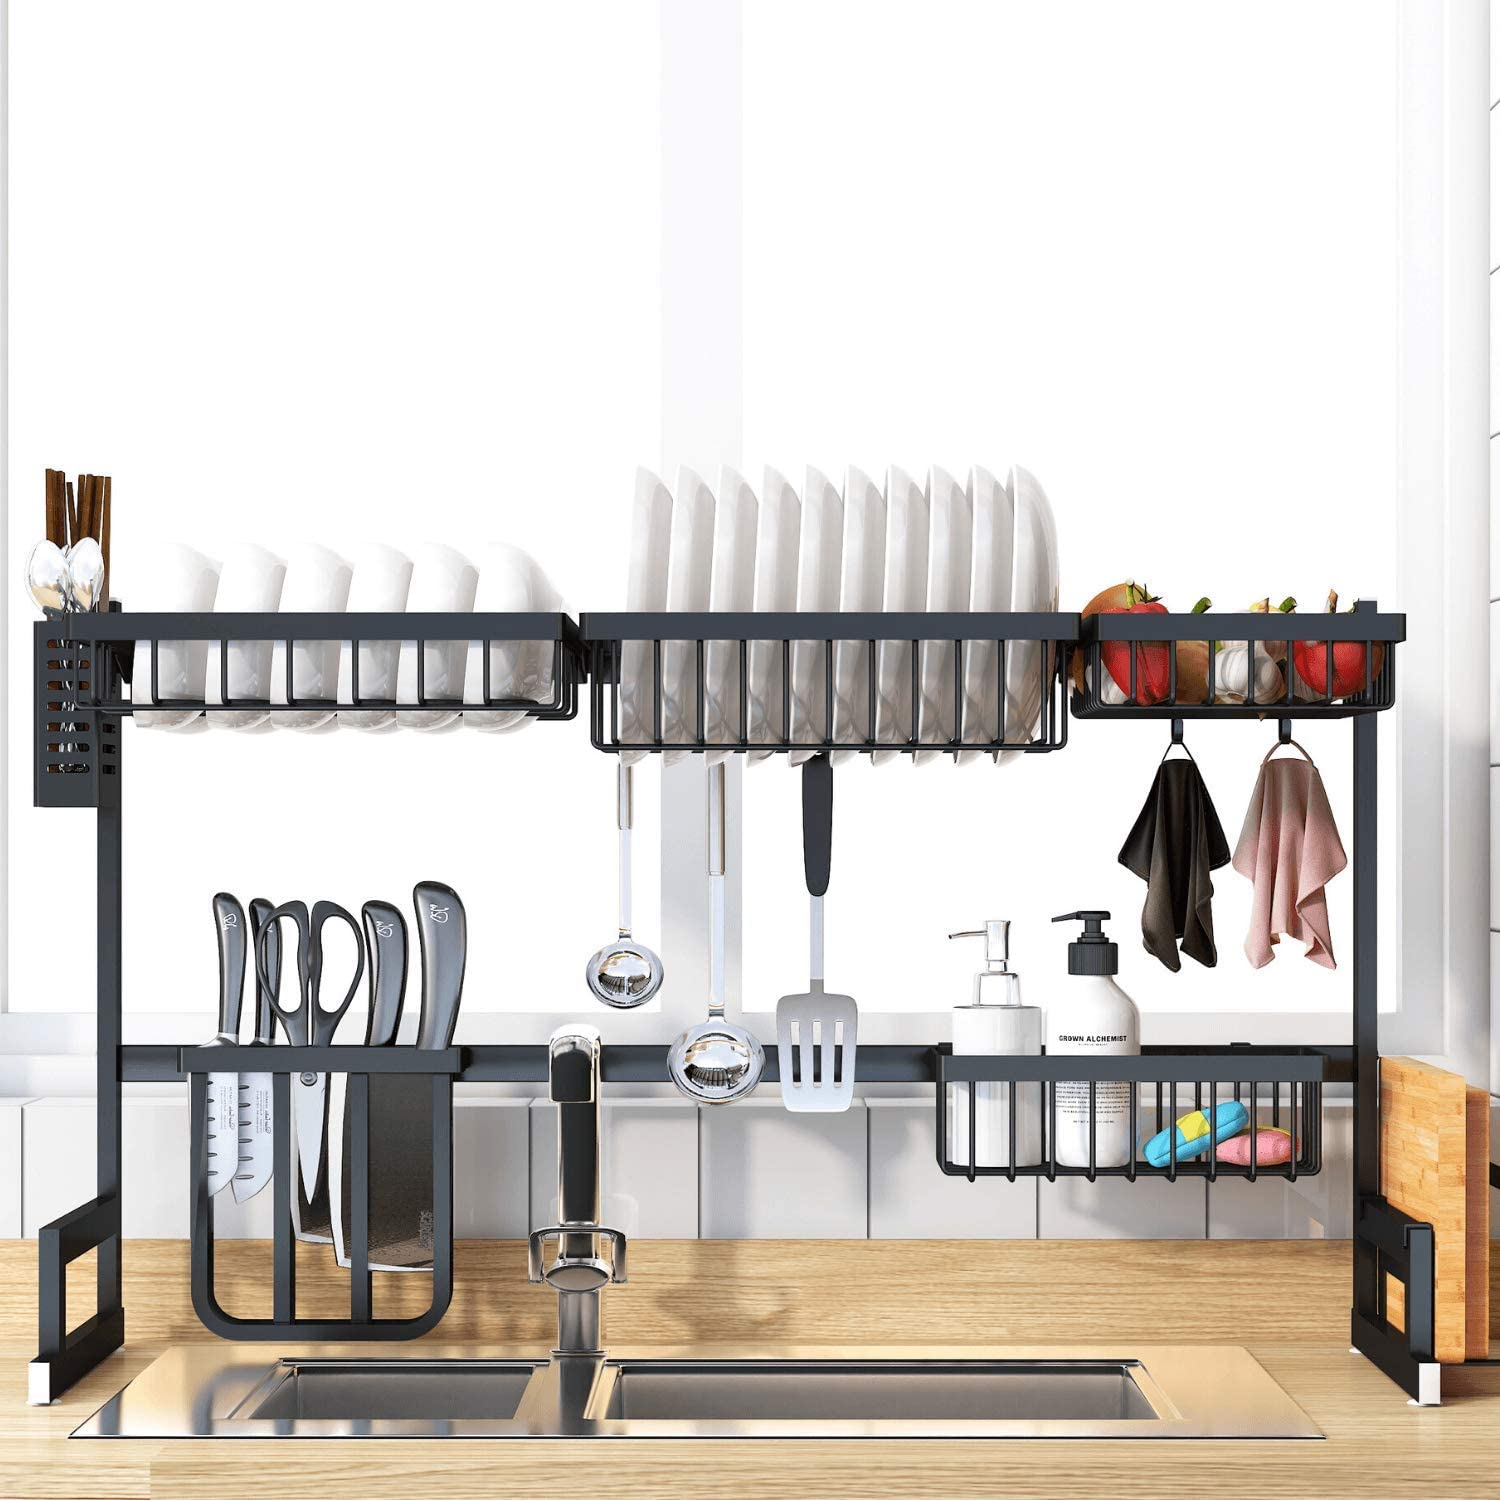 Dish Drying Rack Over the Sink, Stainless Steel Drainer Organizer Shelf for Kitchen Supplies and Countertop Space Saver with Fully Customizable, Large Capacity (Black, Sink Size ≤ 33.5 inch)